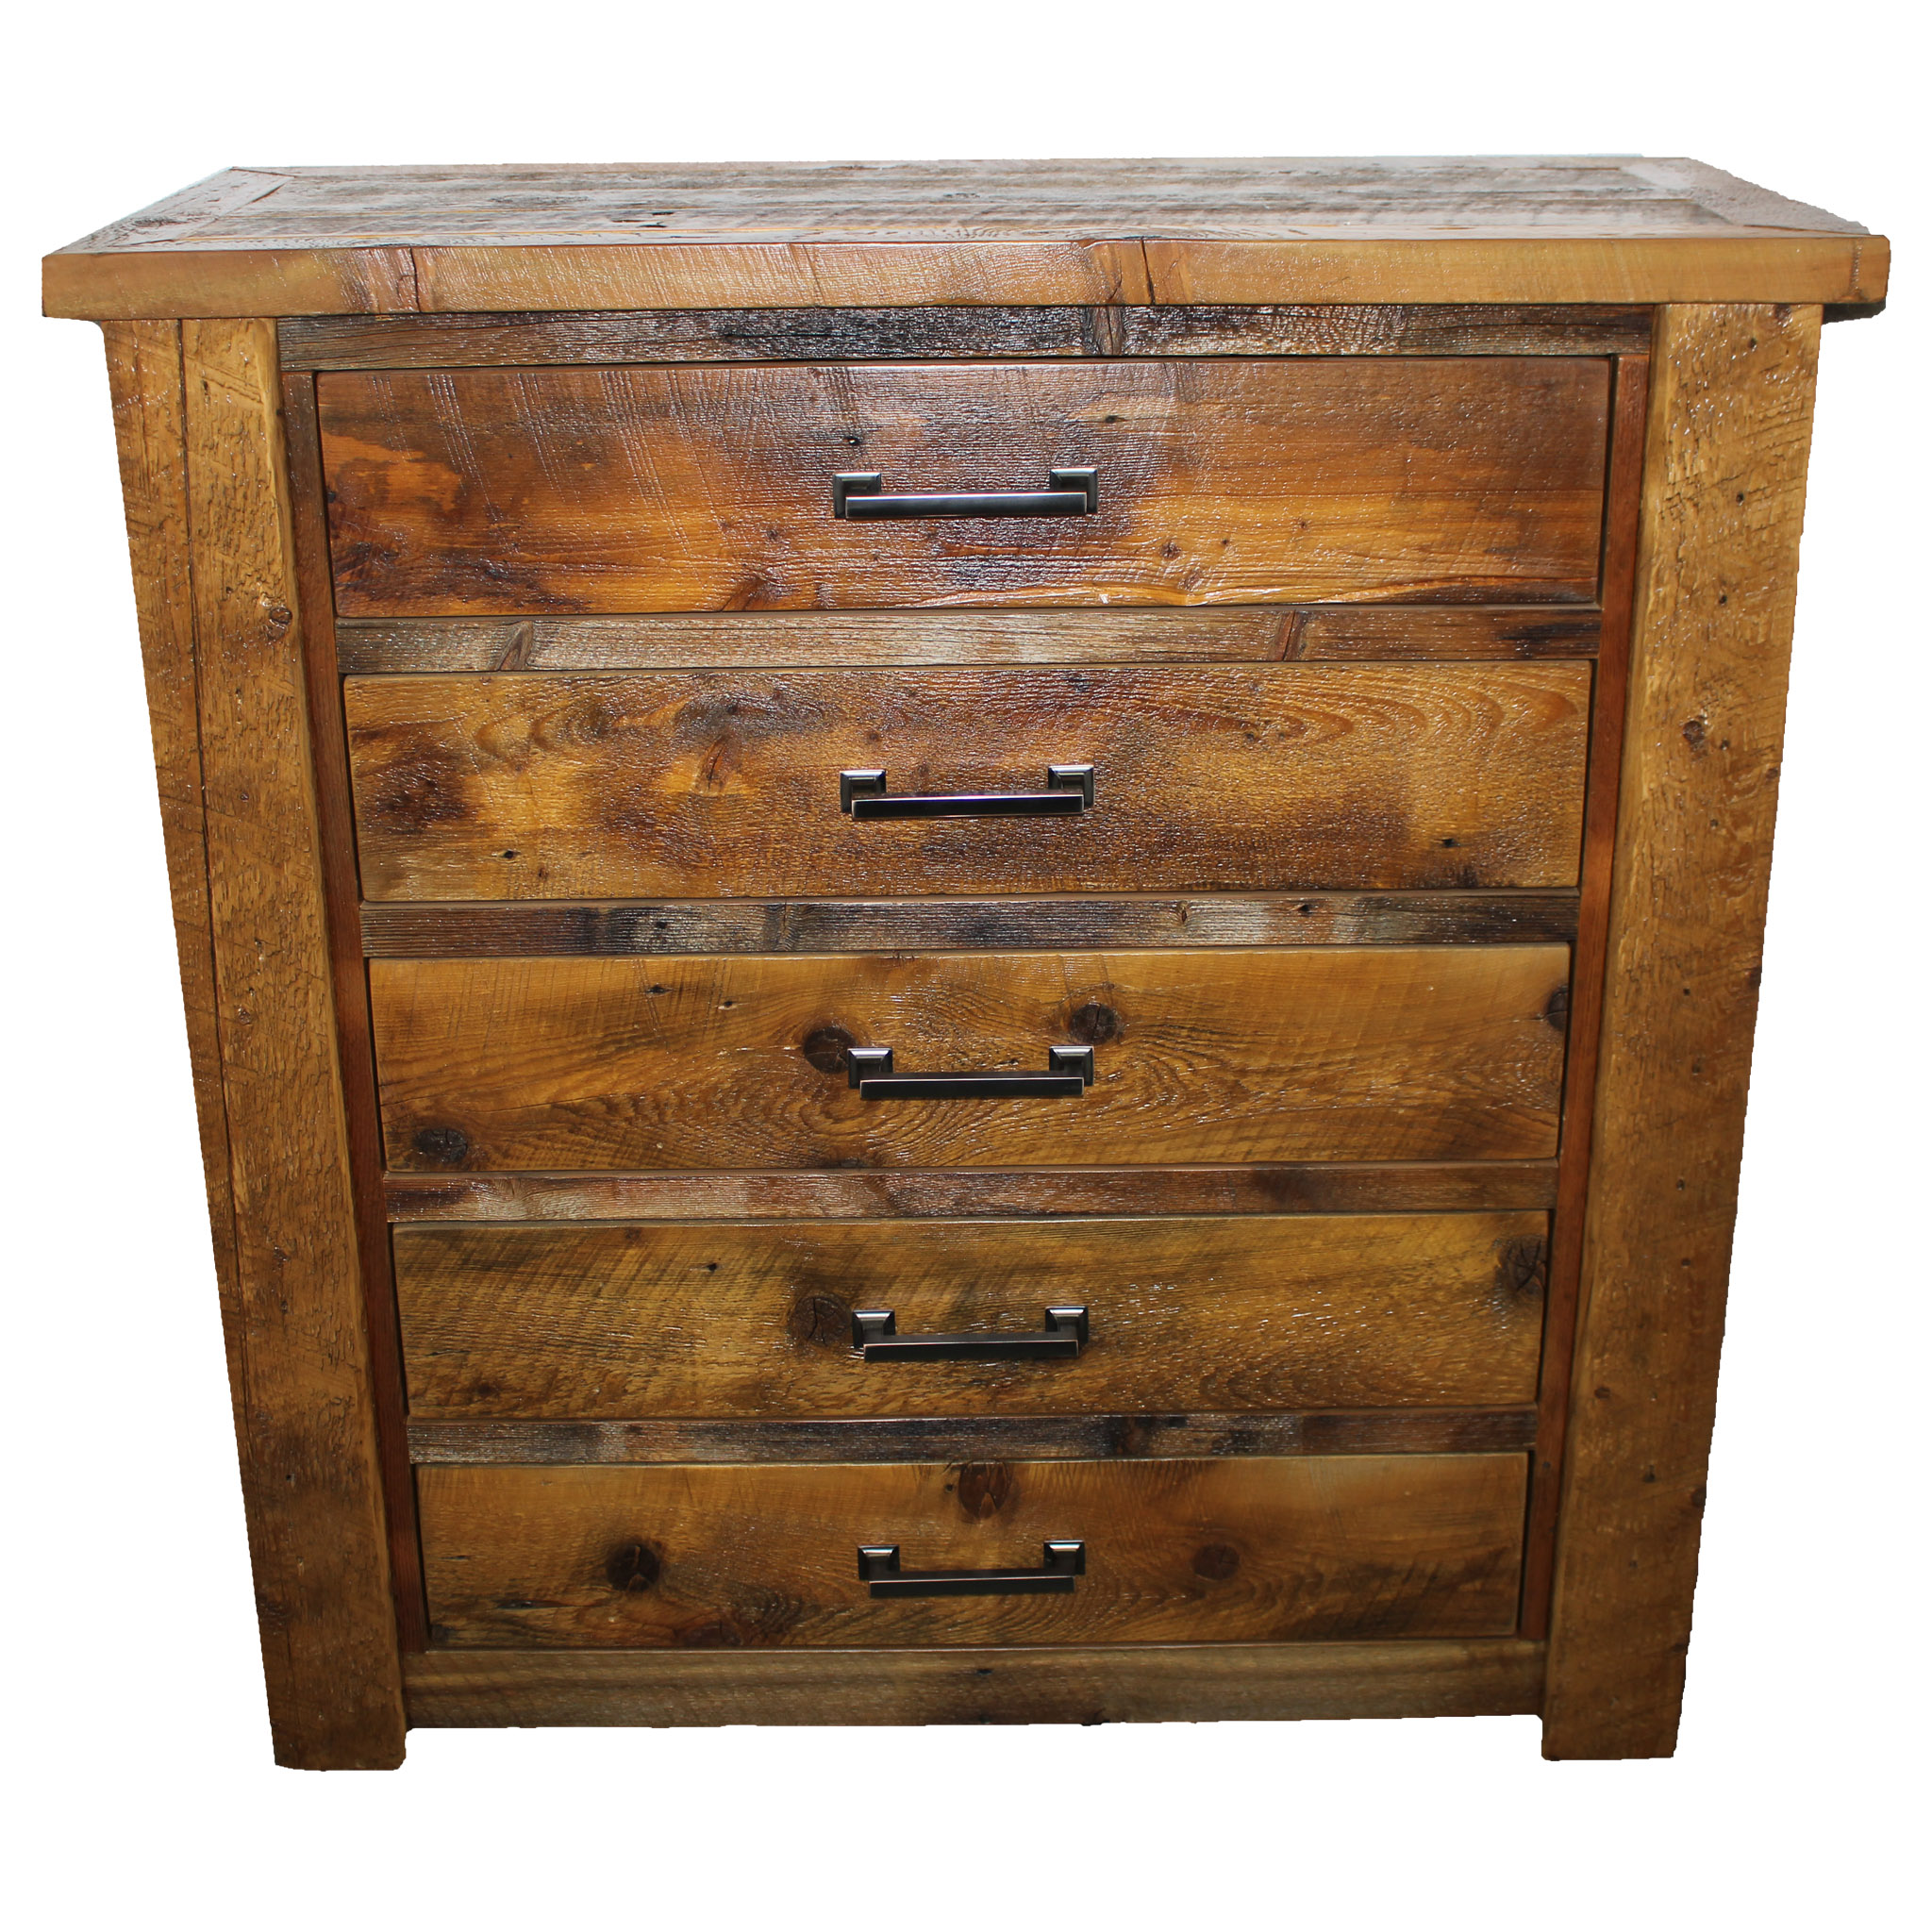 Rustic lodge chest of drawers big sky barnwood